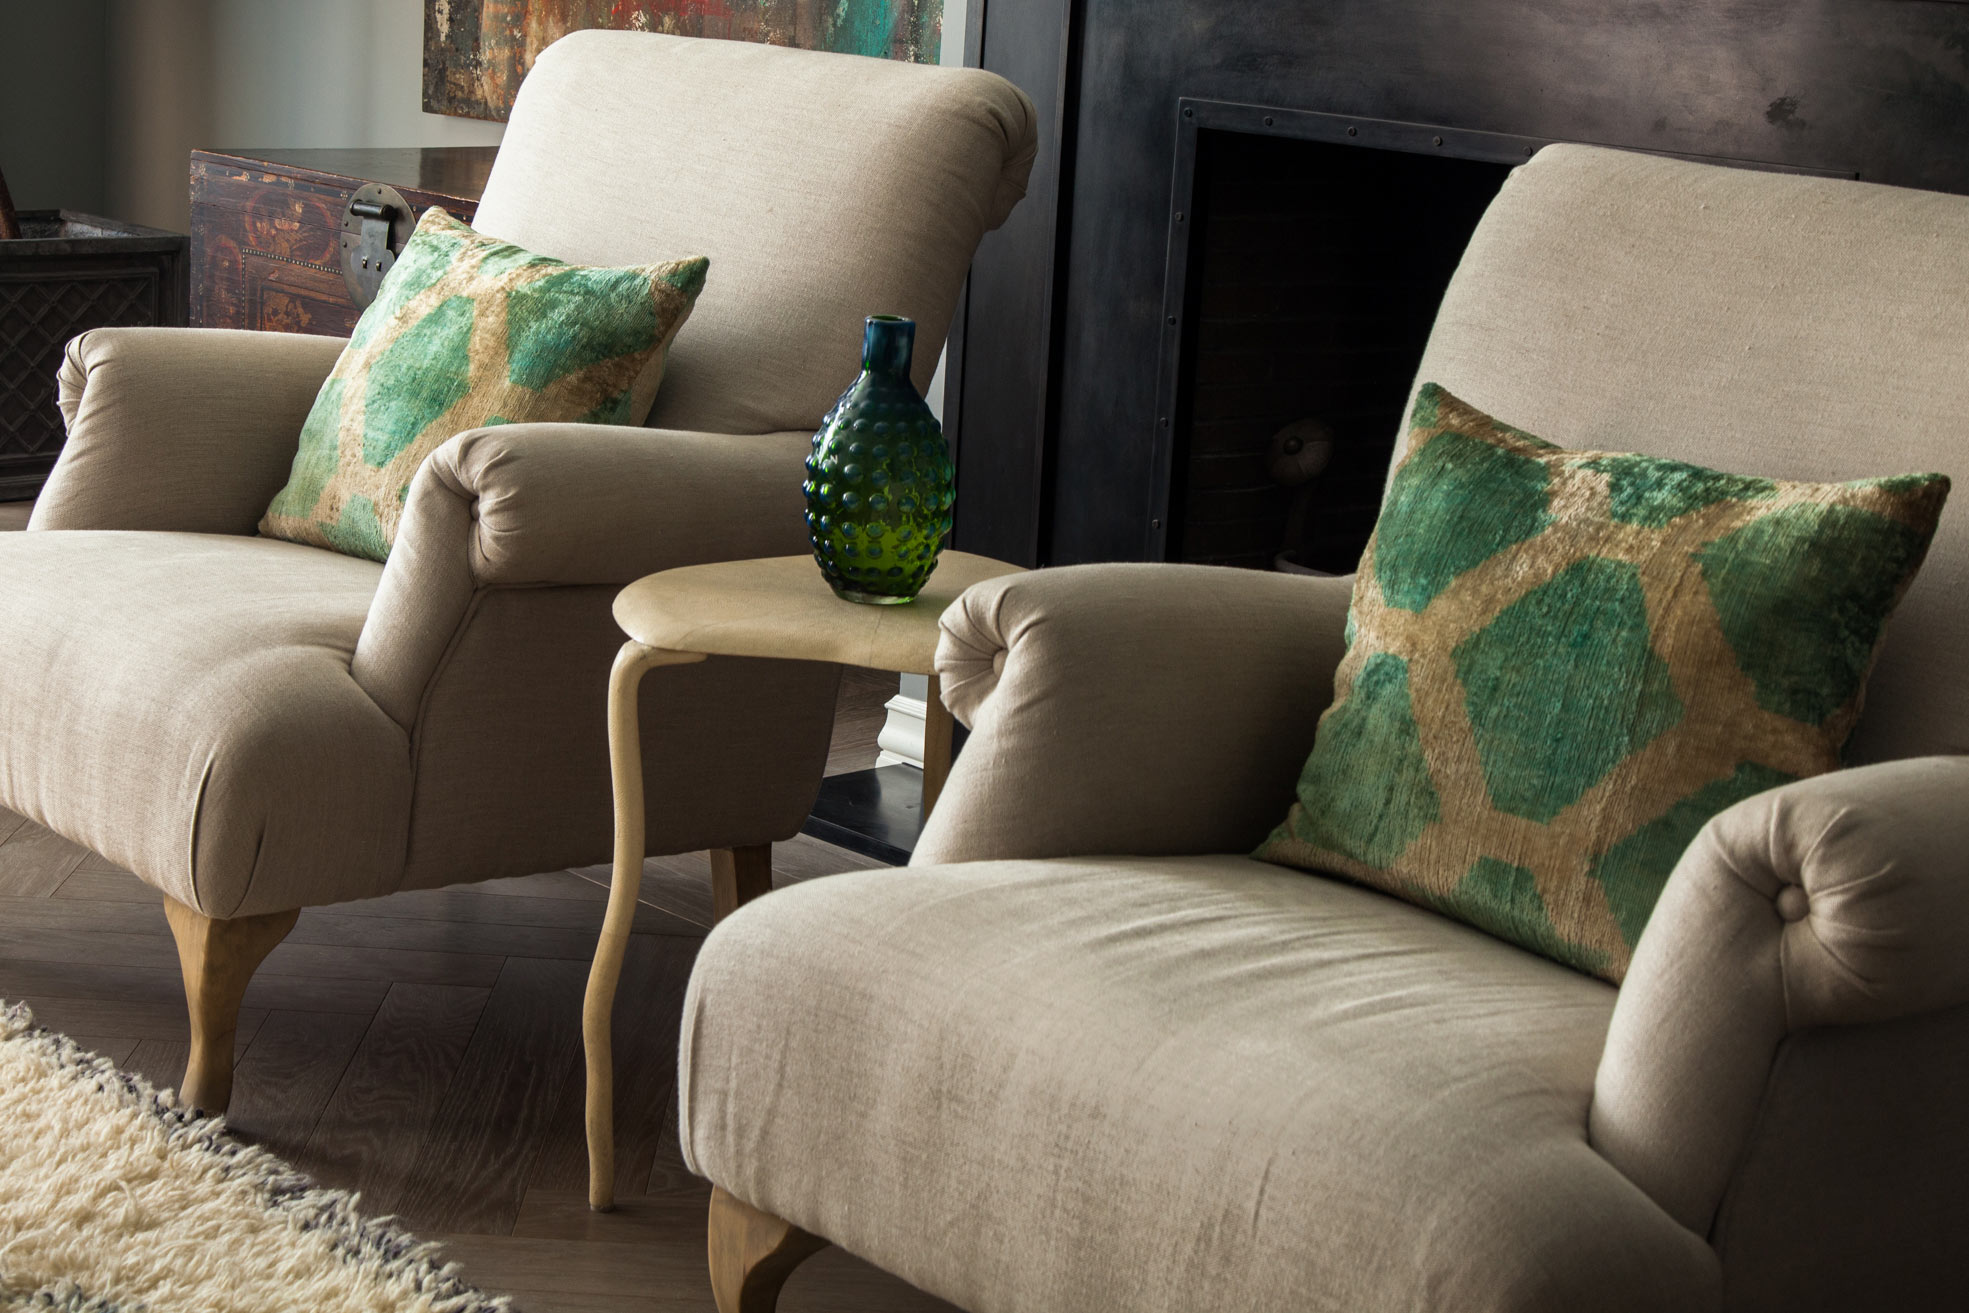 Expert upholstery service San Francisco Bay Area and Los Angeles